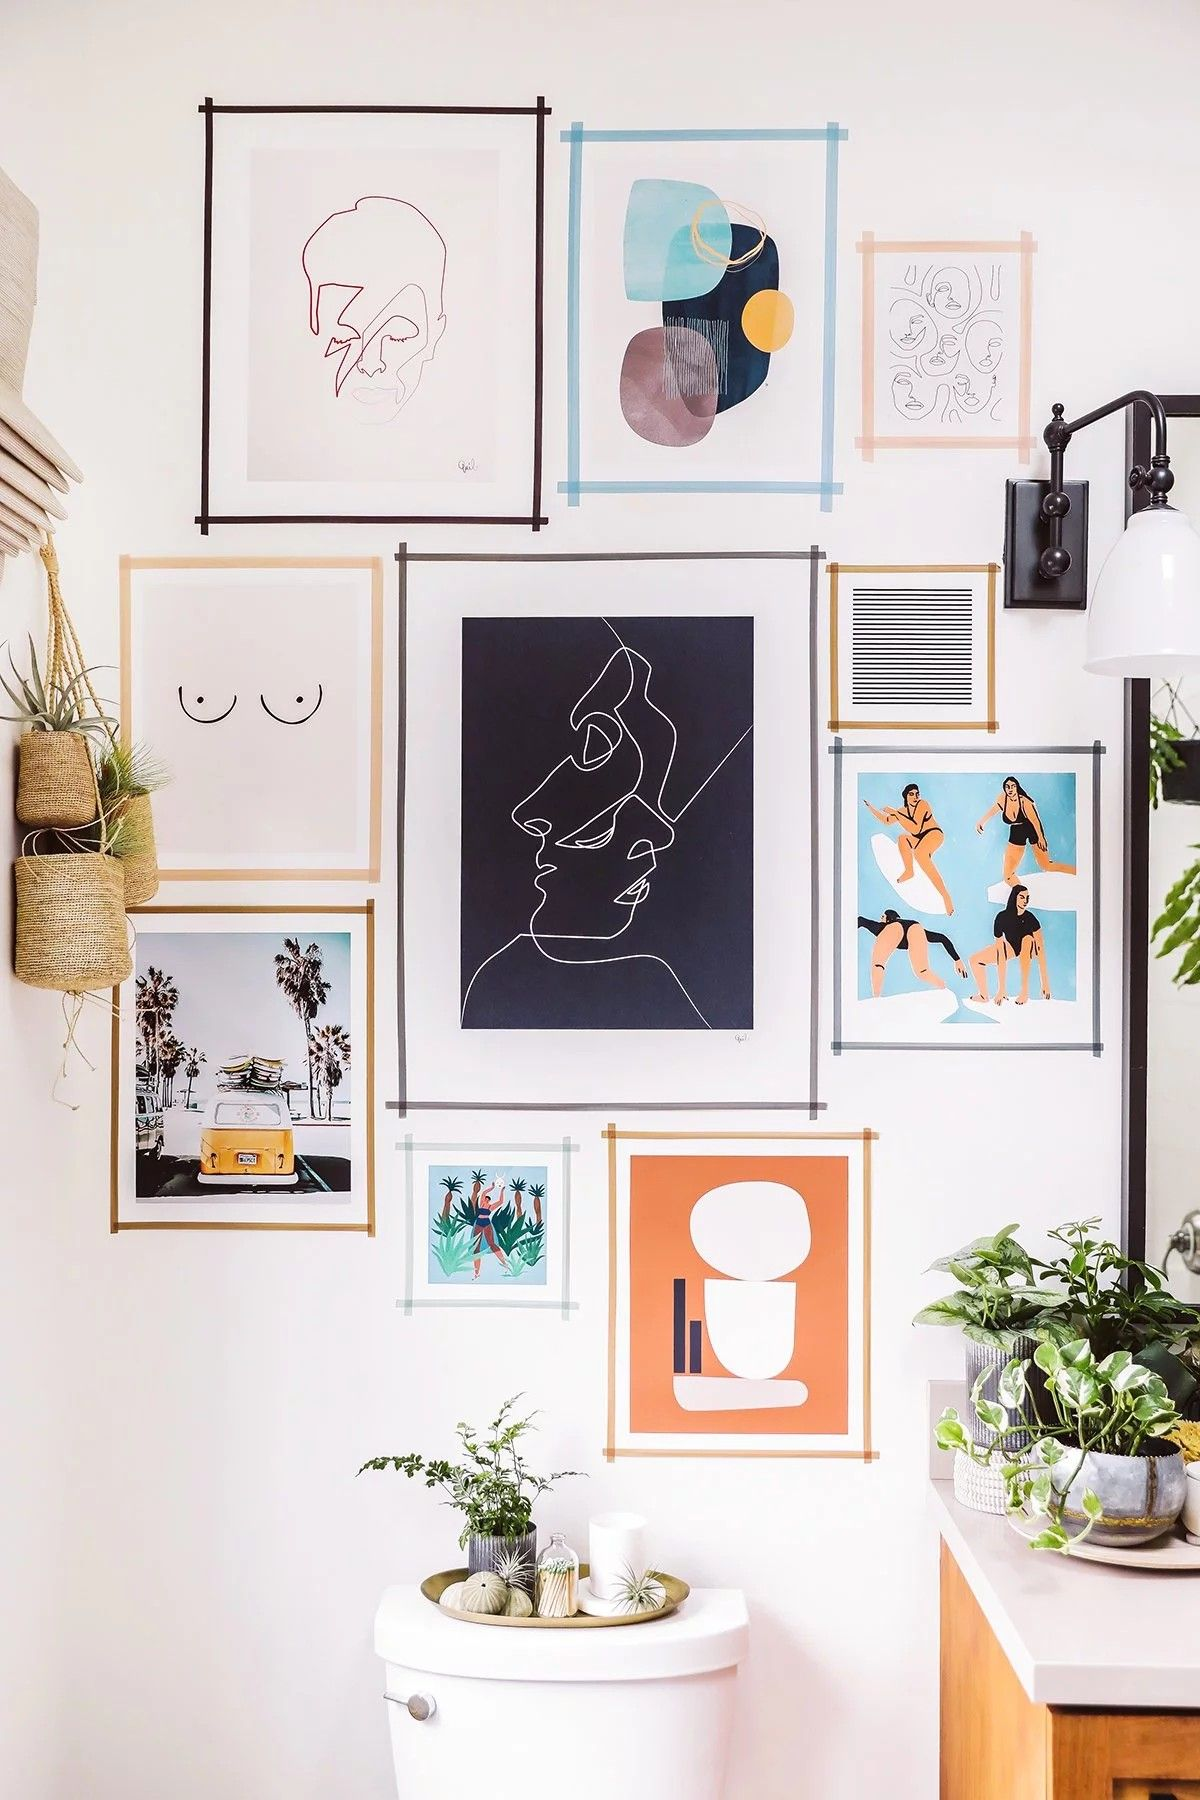 This Washi Tape Gallery Wall Is Beautiful Decor Gallery Wall Room Decor